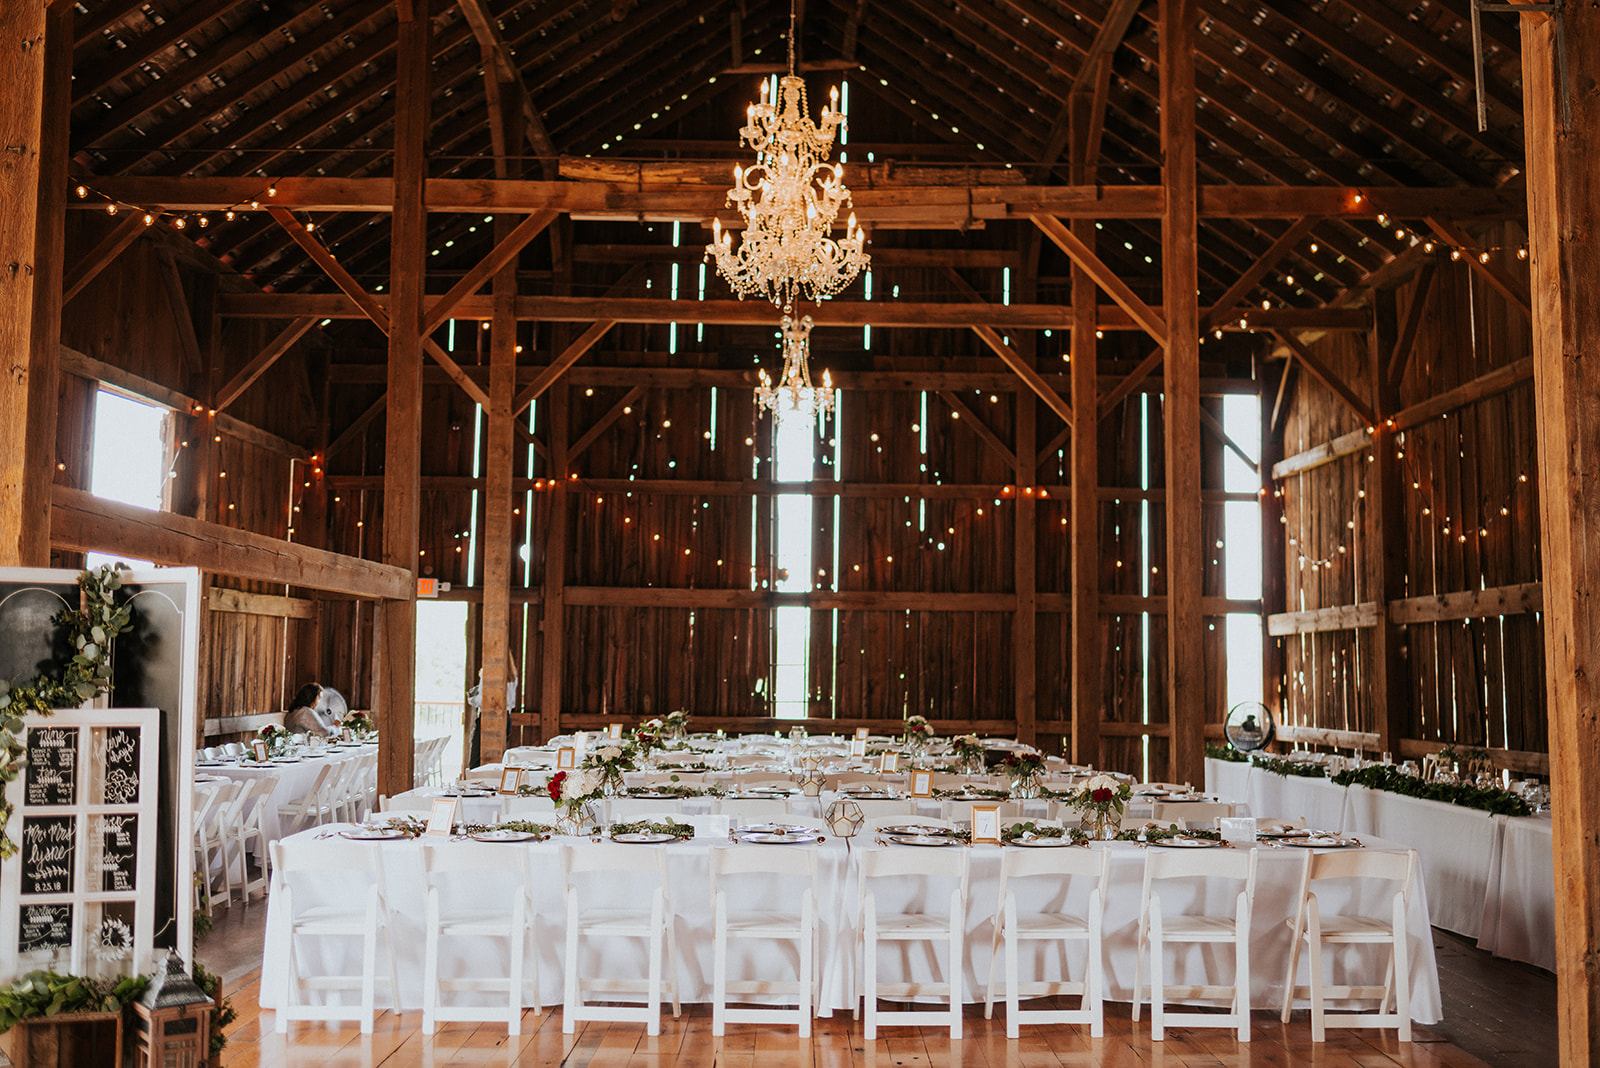 overthevineswisconsinwedding_1080.jpg